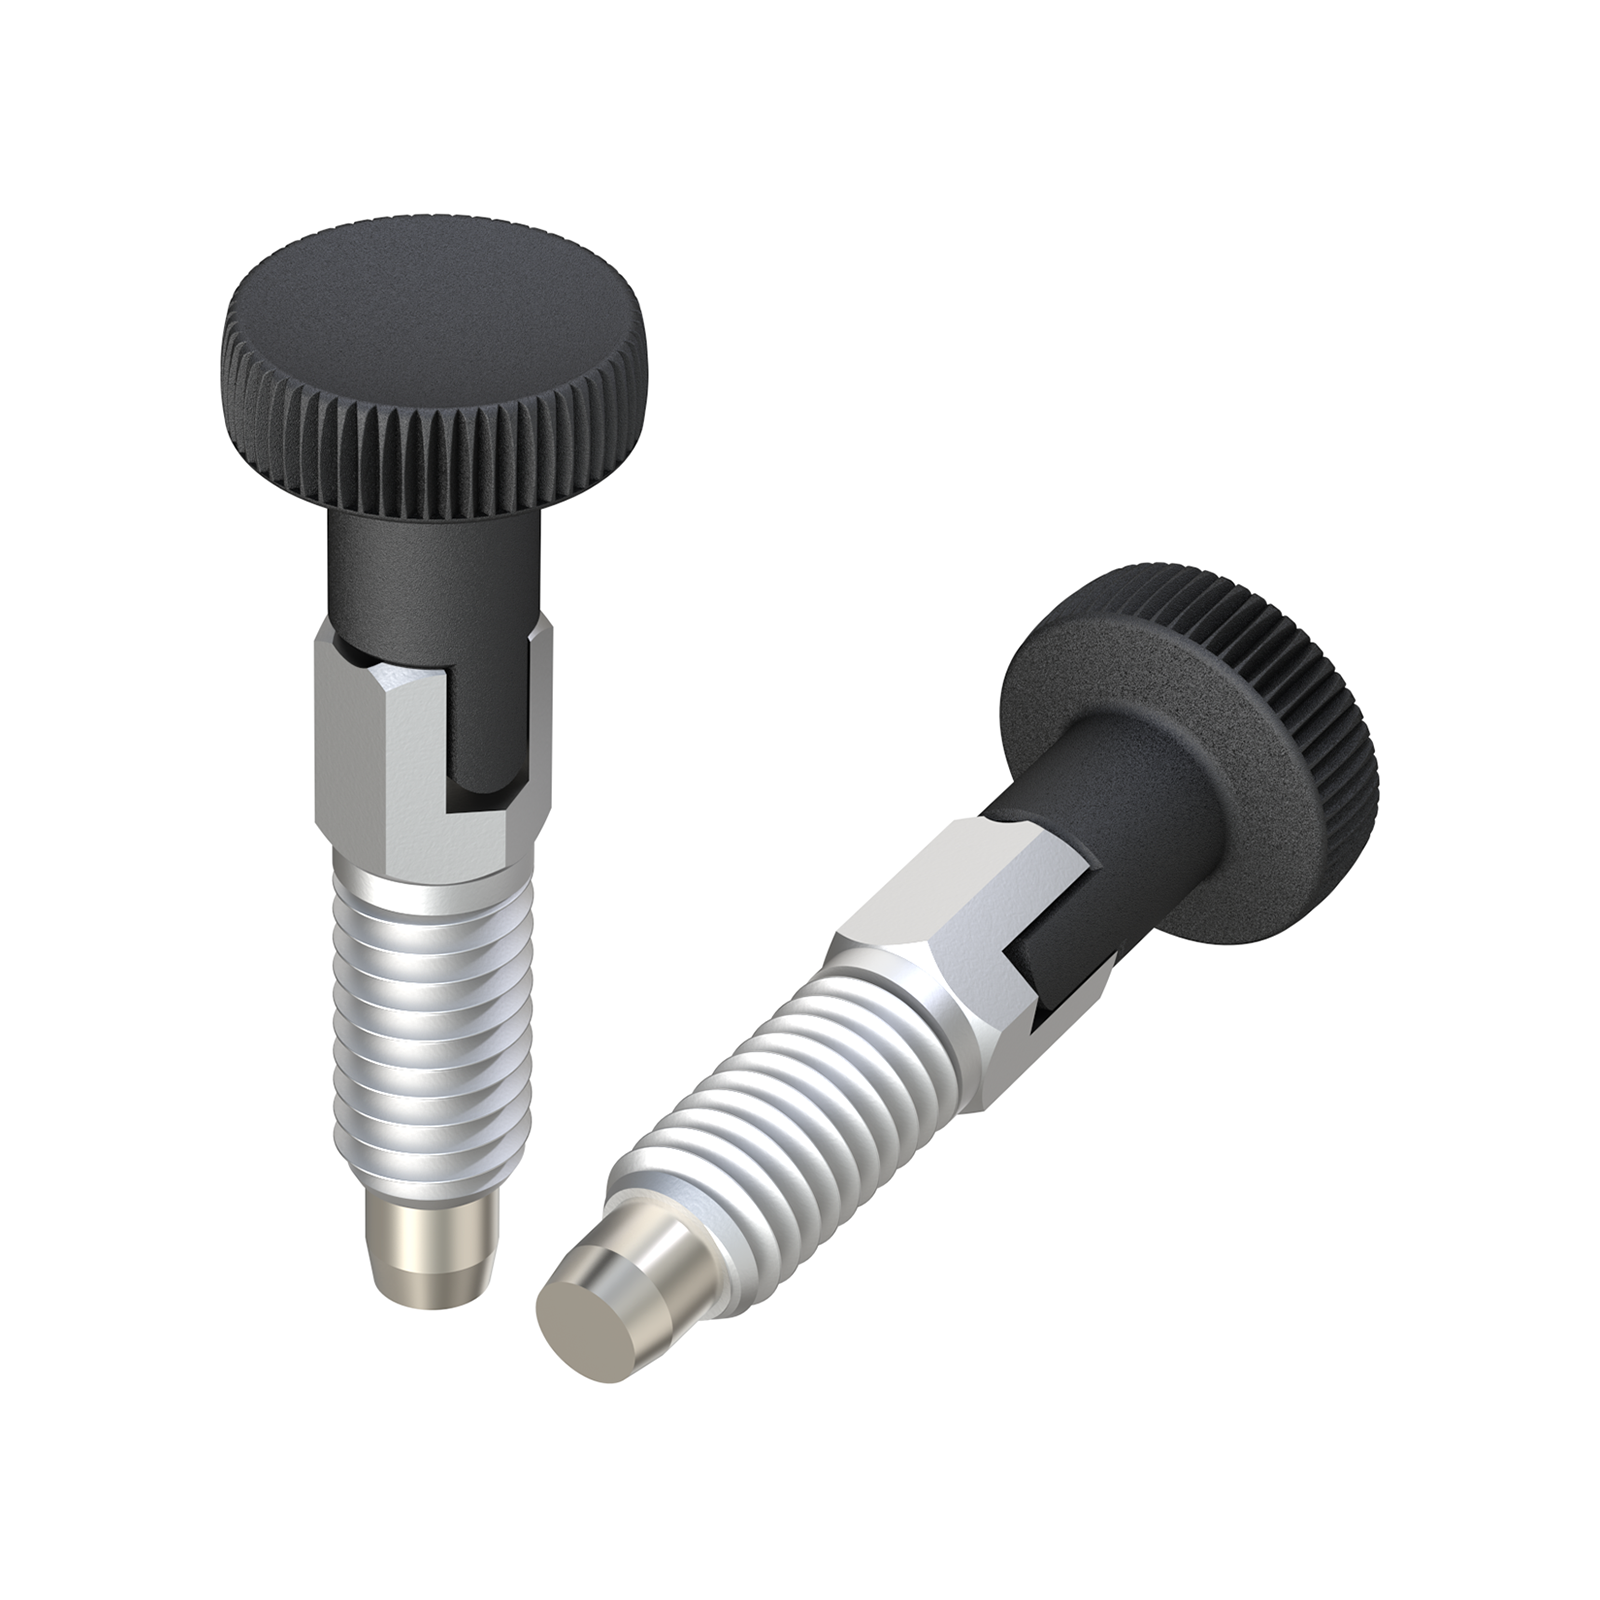 Index bolt with knurled head with stop